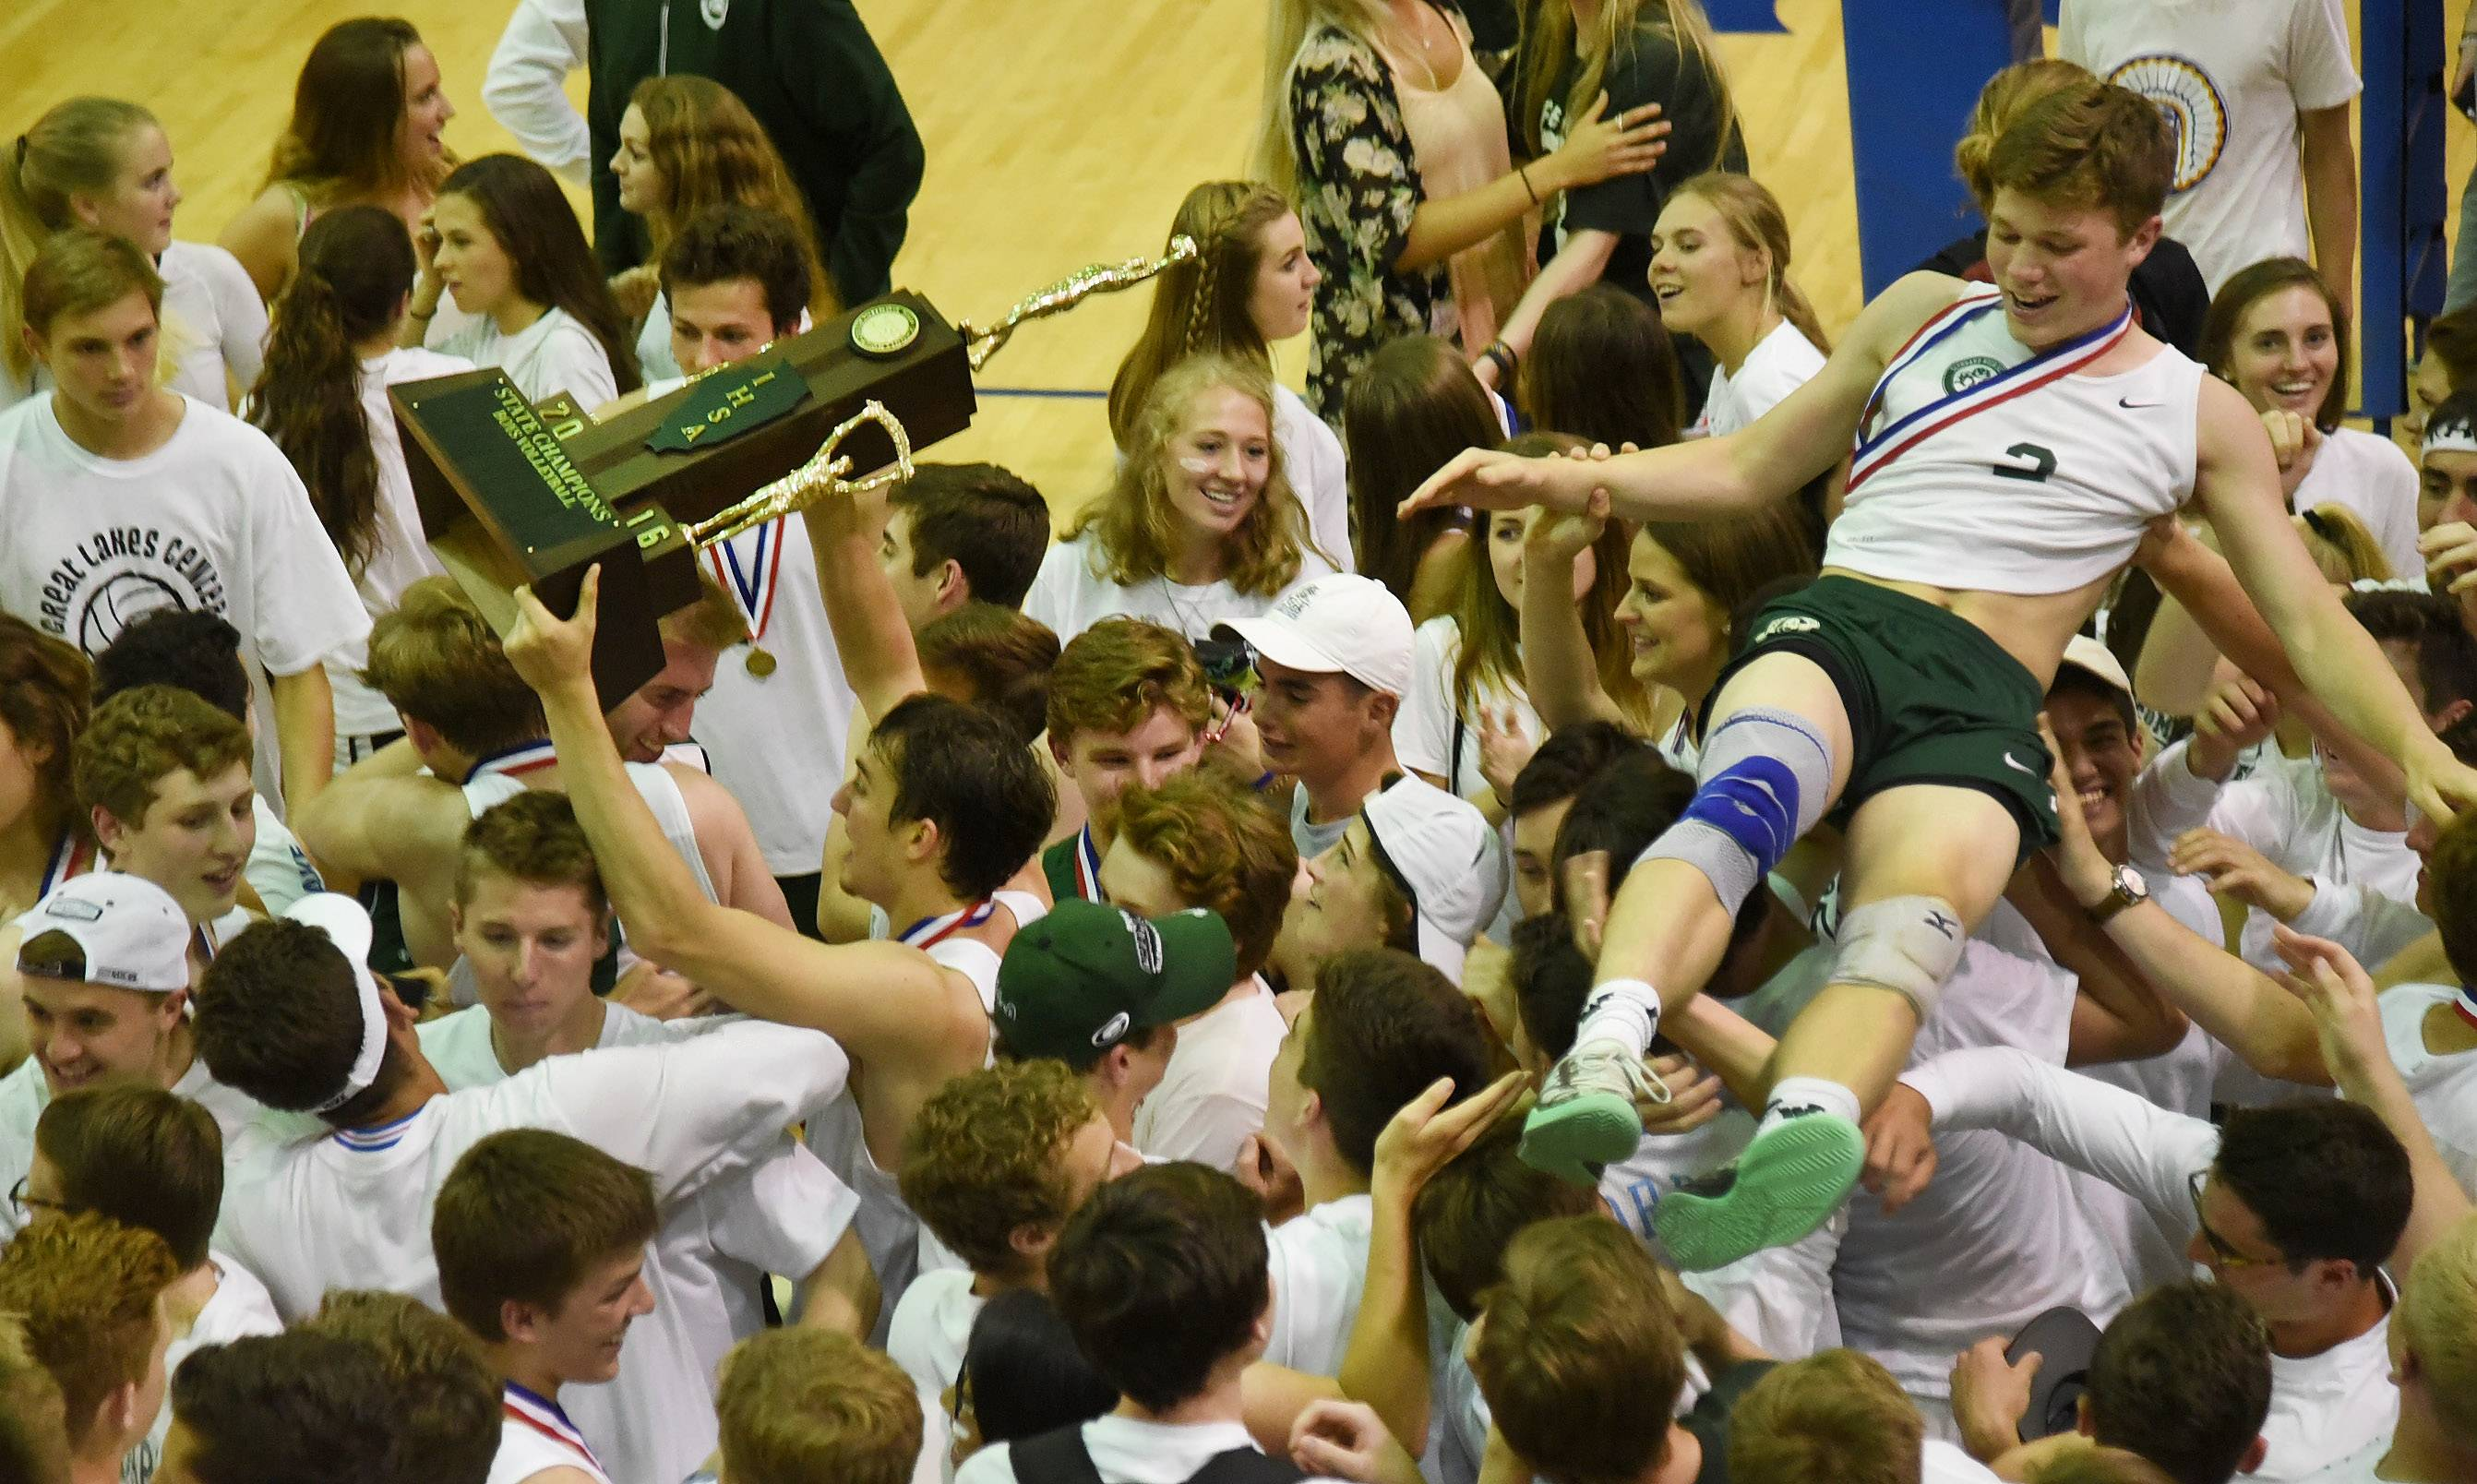 Kyler Kotsakis hoists the trophy, while Eric Shanahan body surfs as Glenbard West celebrates the boys volleyball, state championship after defeating New Trier.